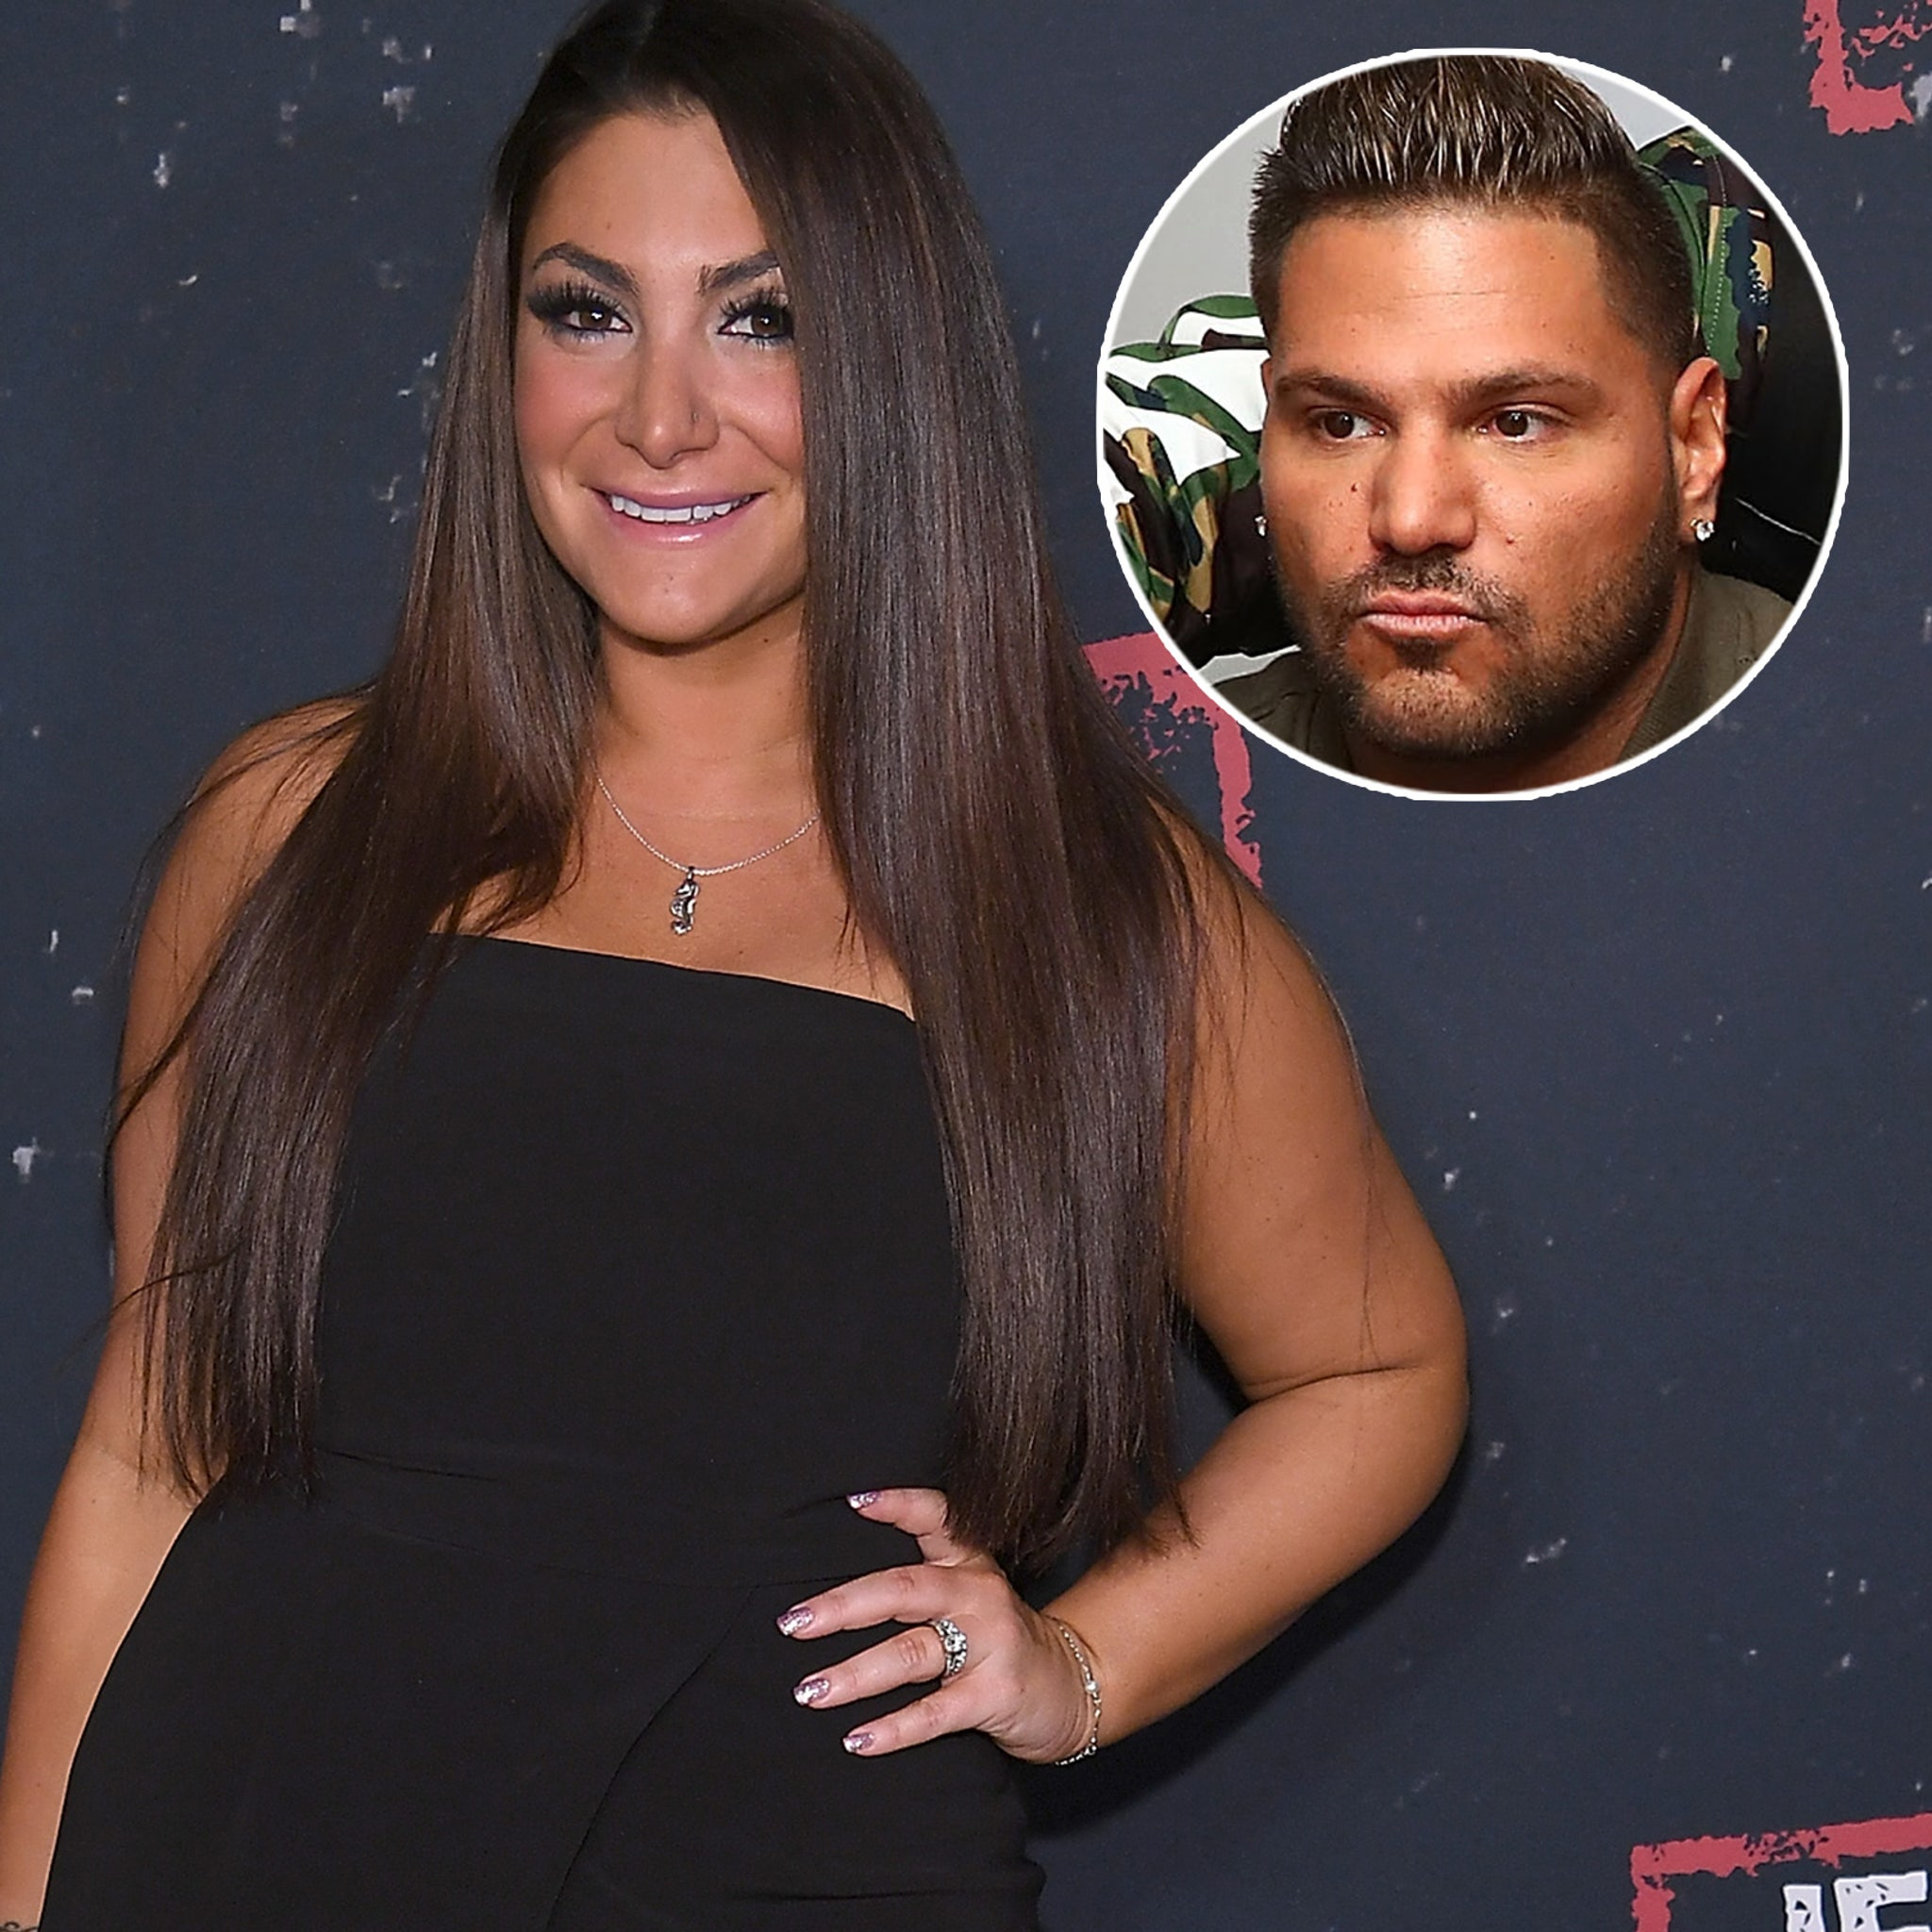 From jersey girlfriend ronnie shore 'Jersey Shore'